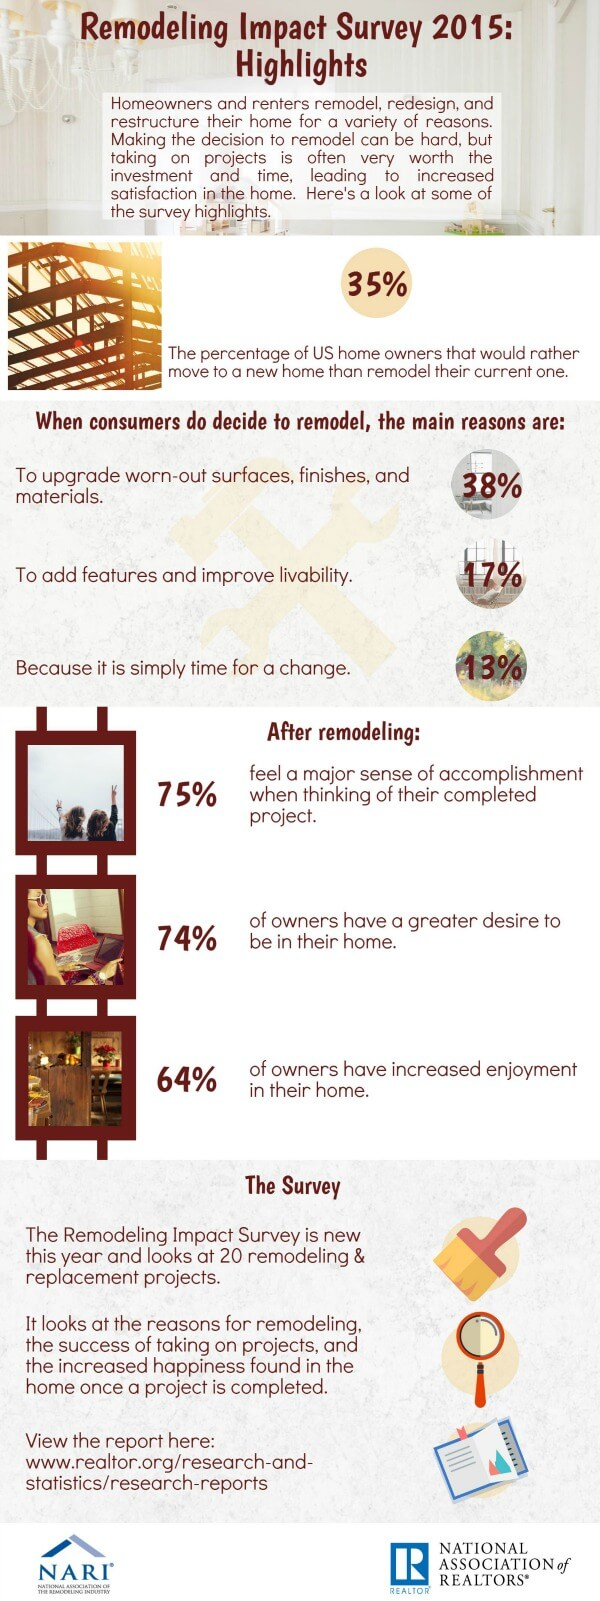 Remodeling Impact Survey 2015: Highlights